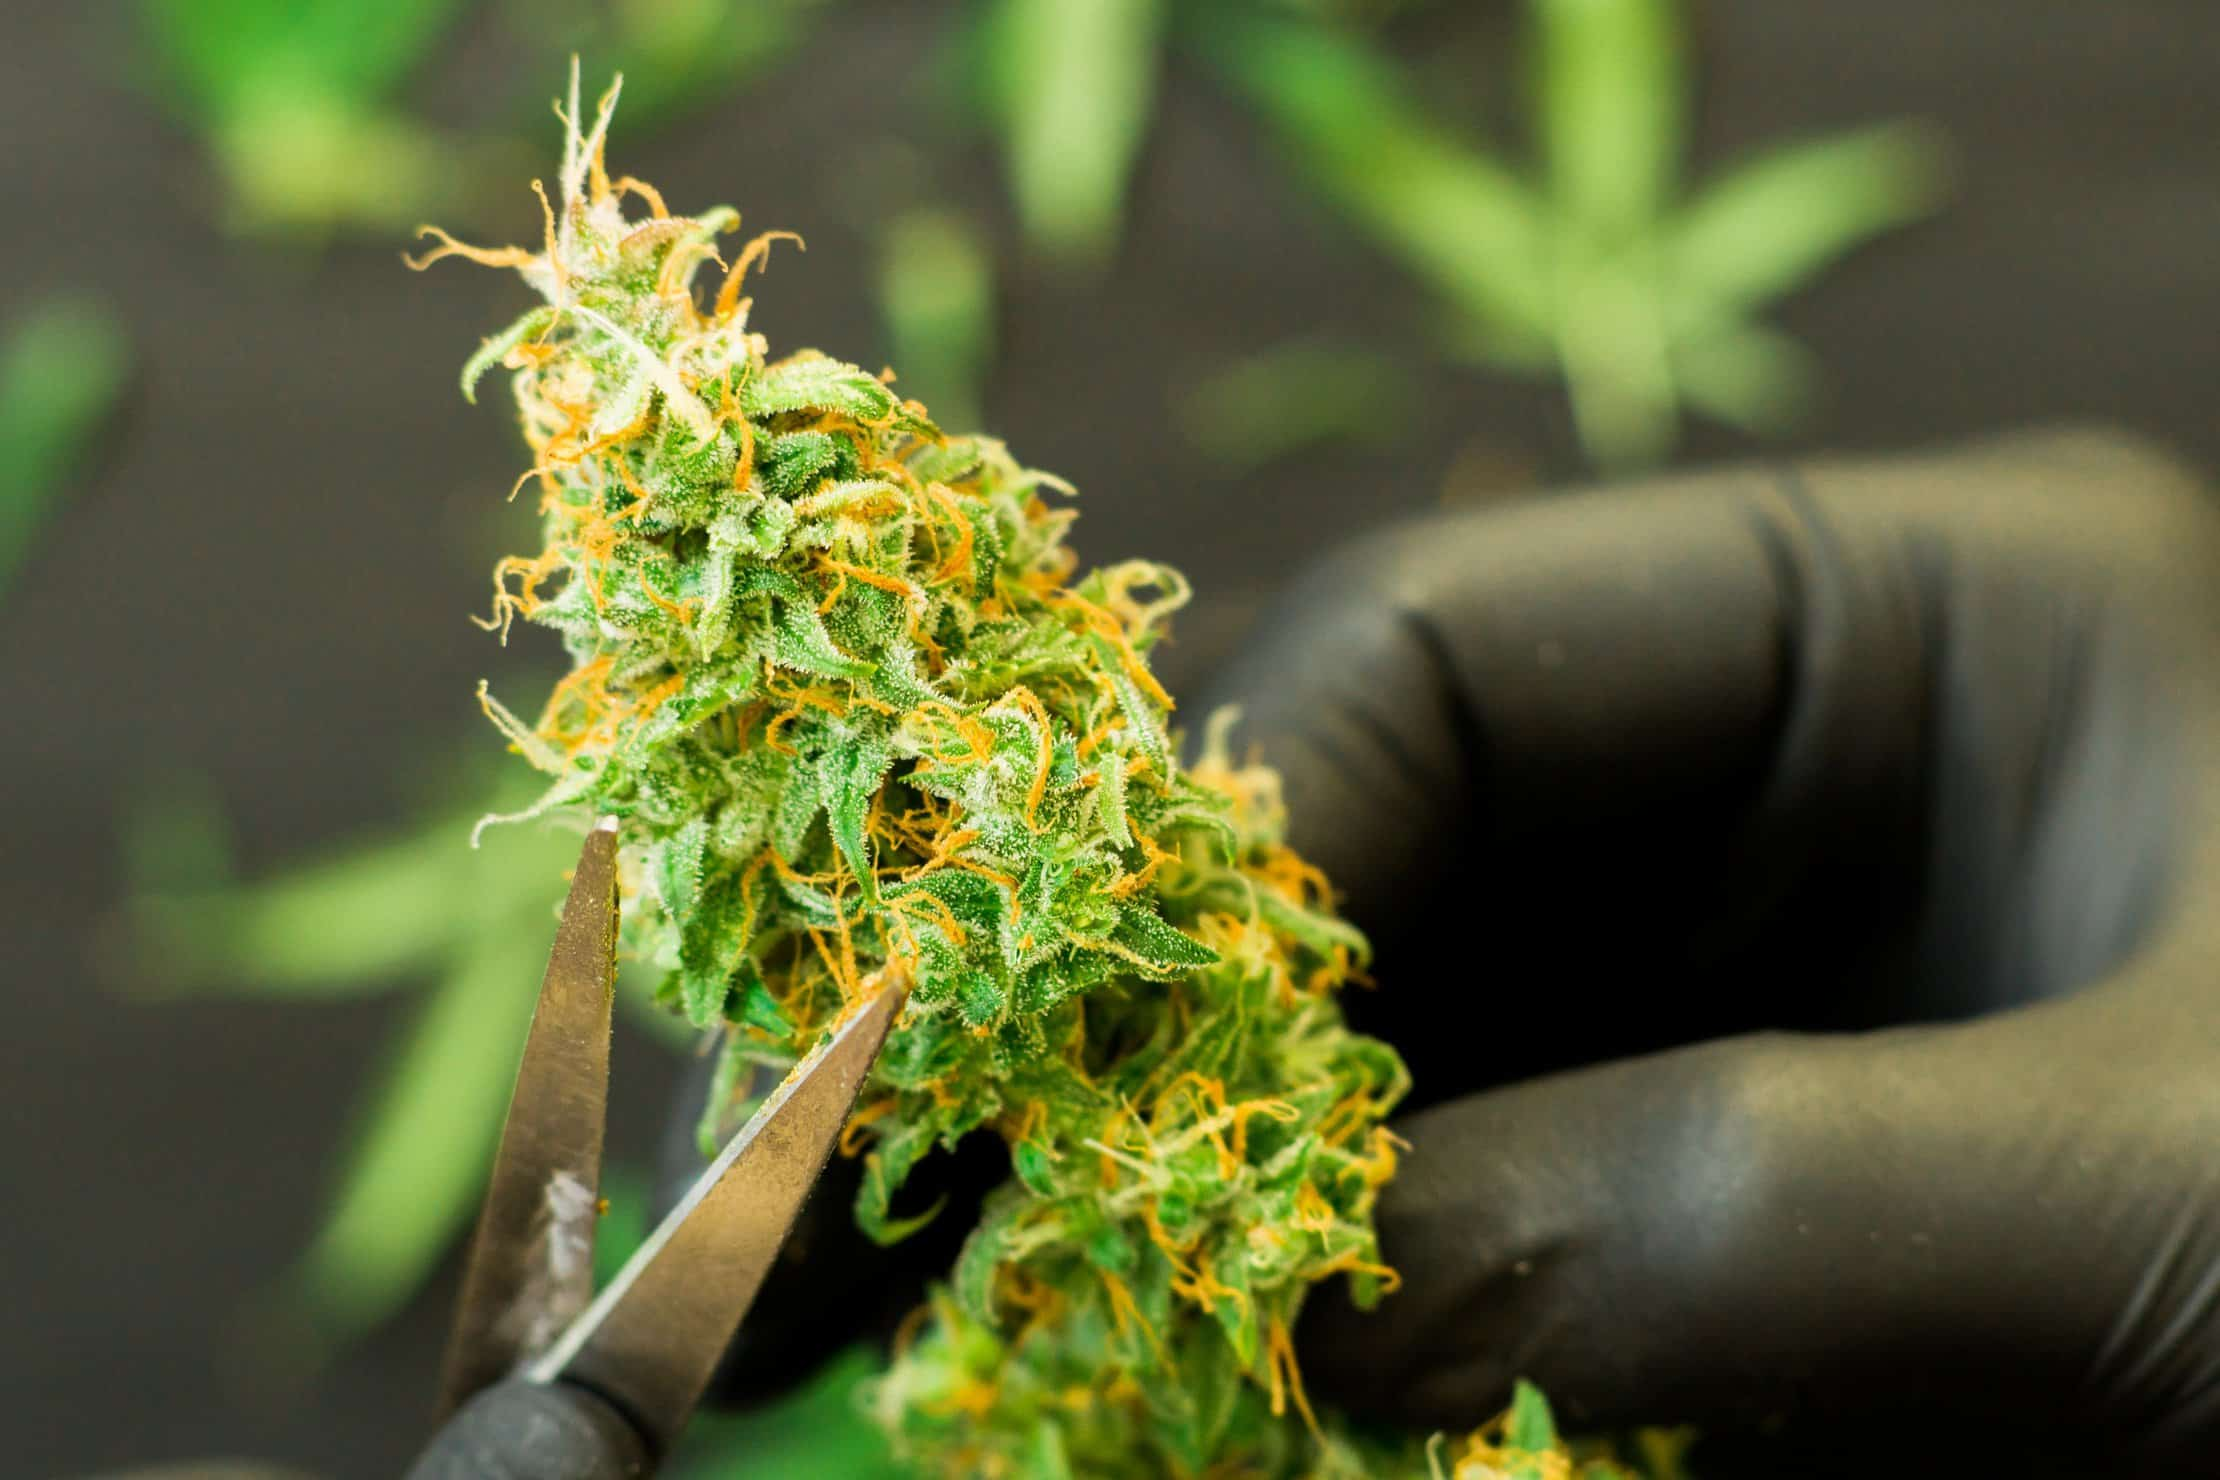 Tips for Finding Good Cannabis Industry Jobs